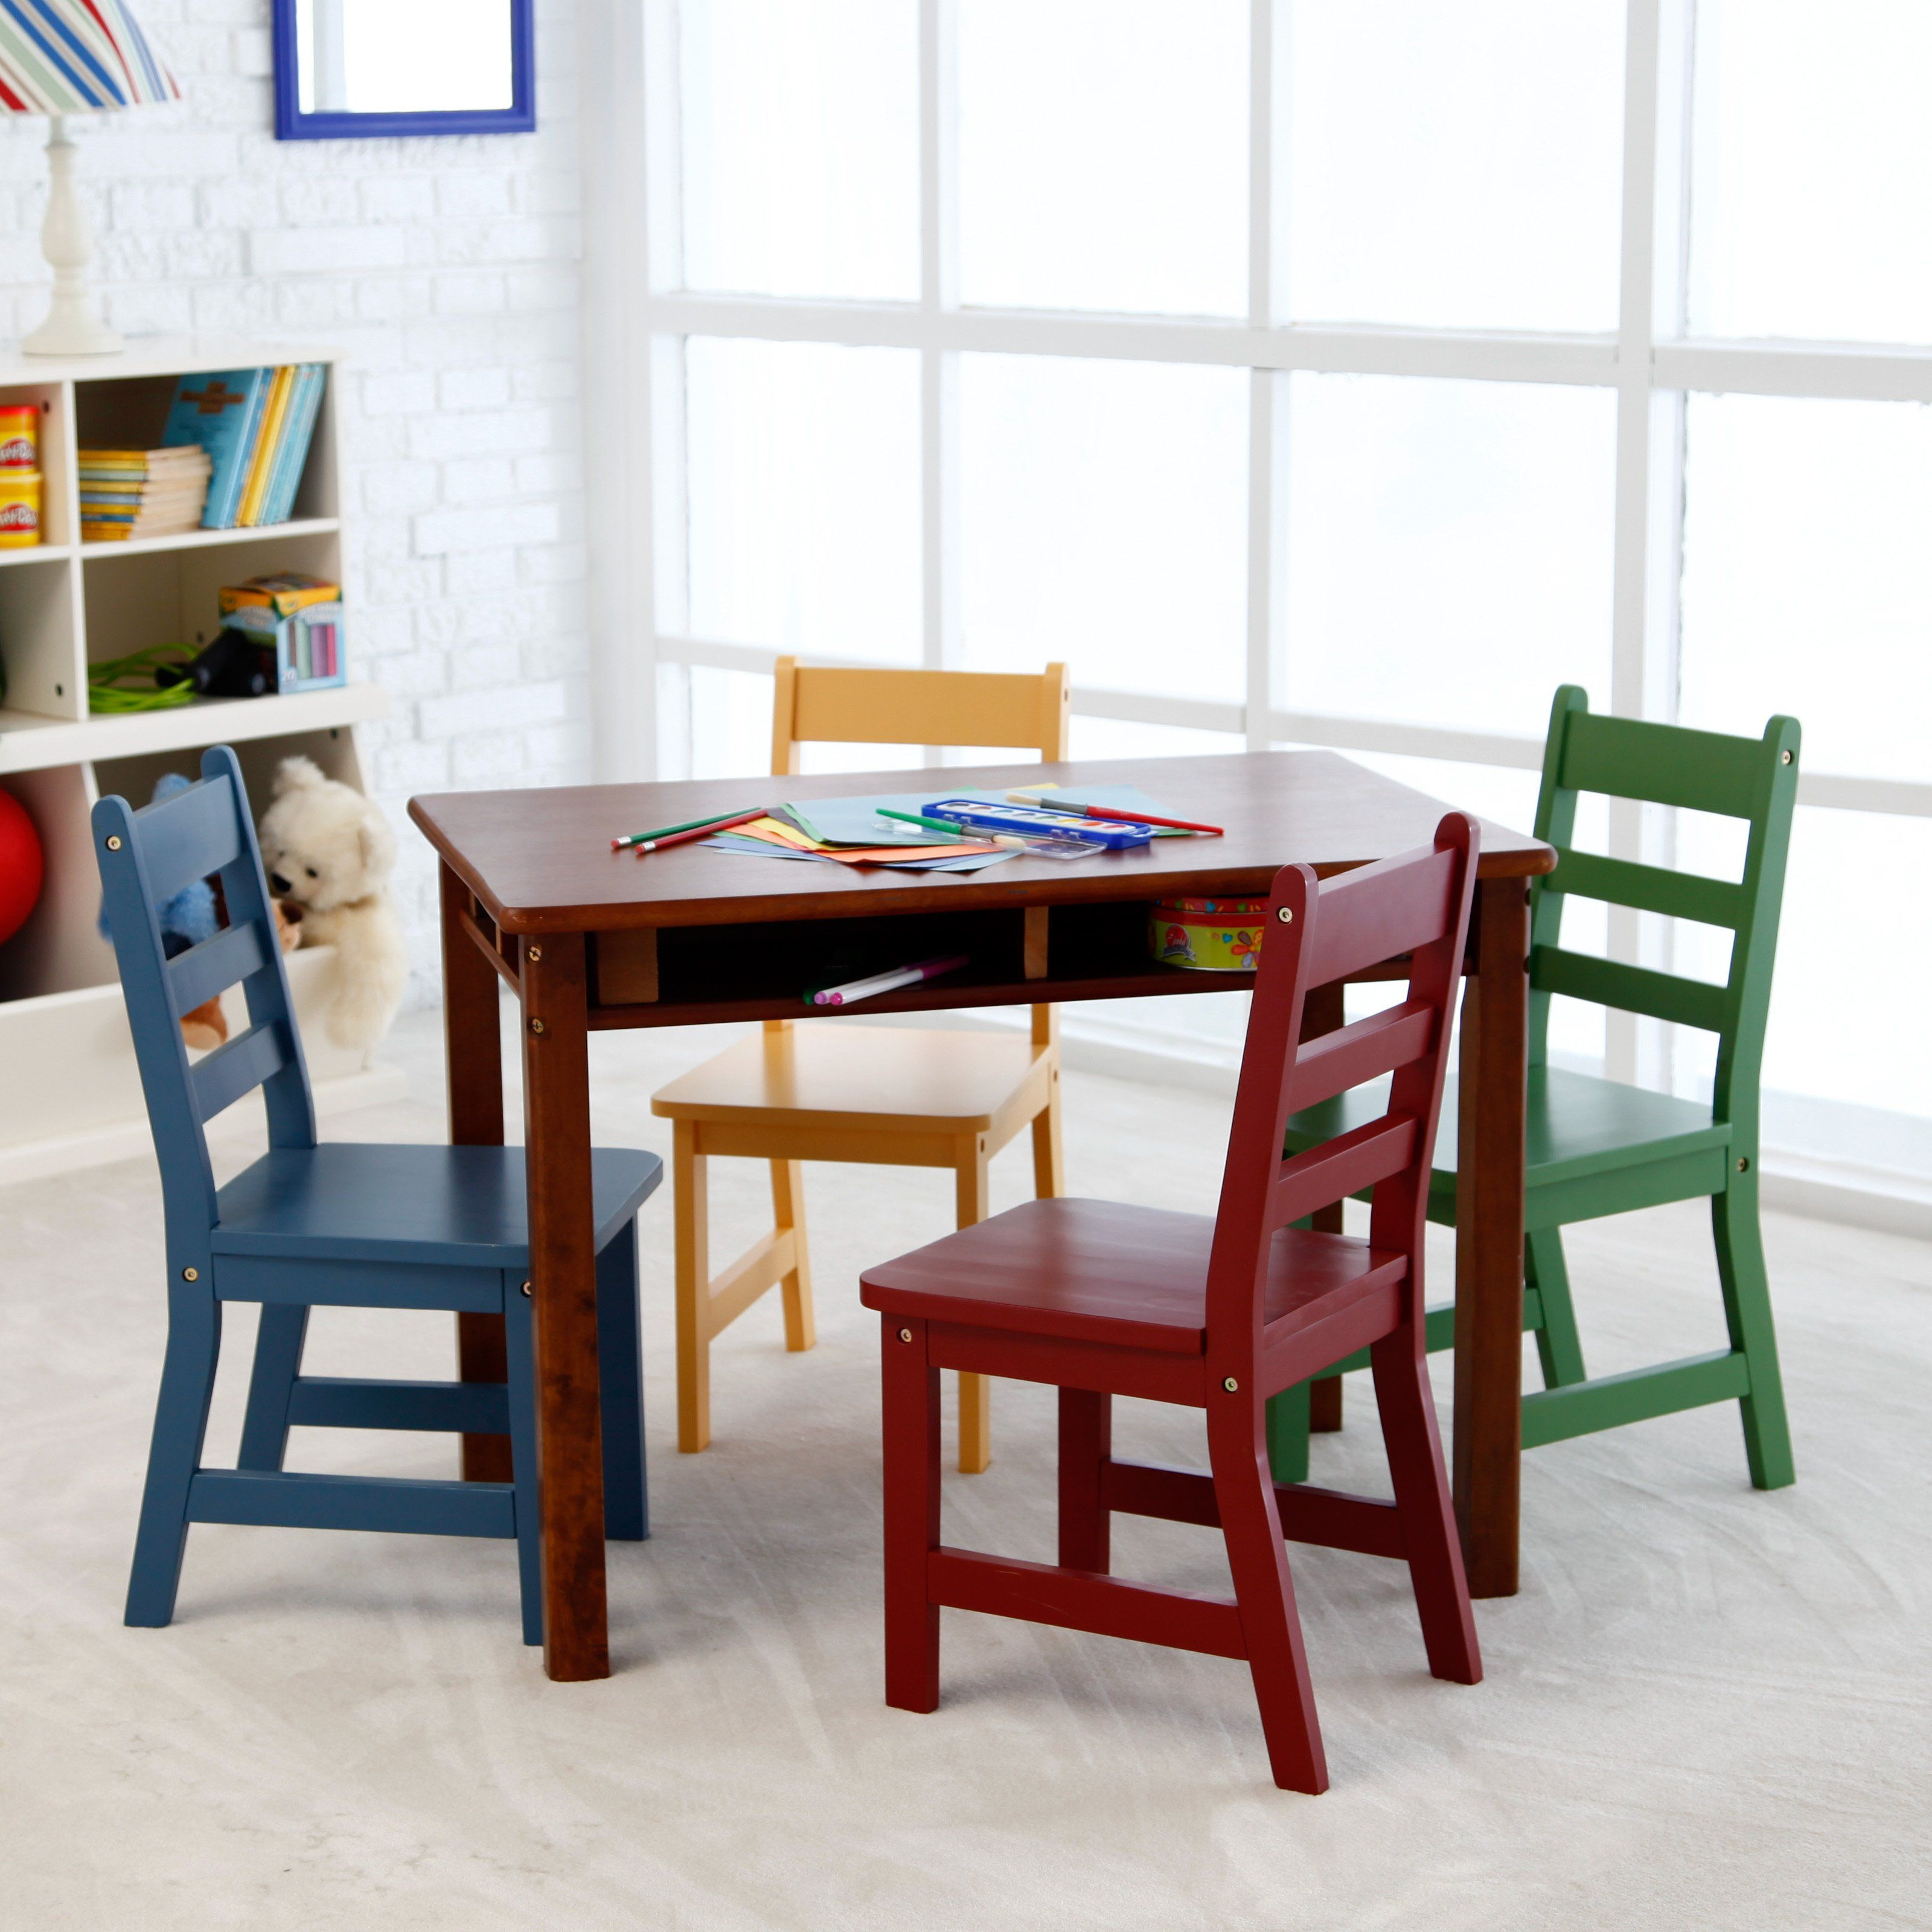 images about Bamboo Furniture 4 Kids Inspiration on